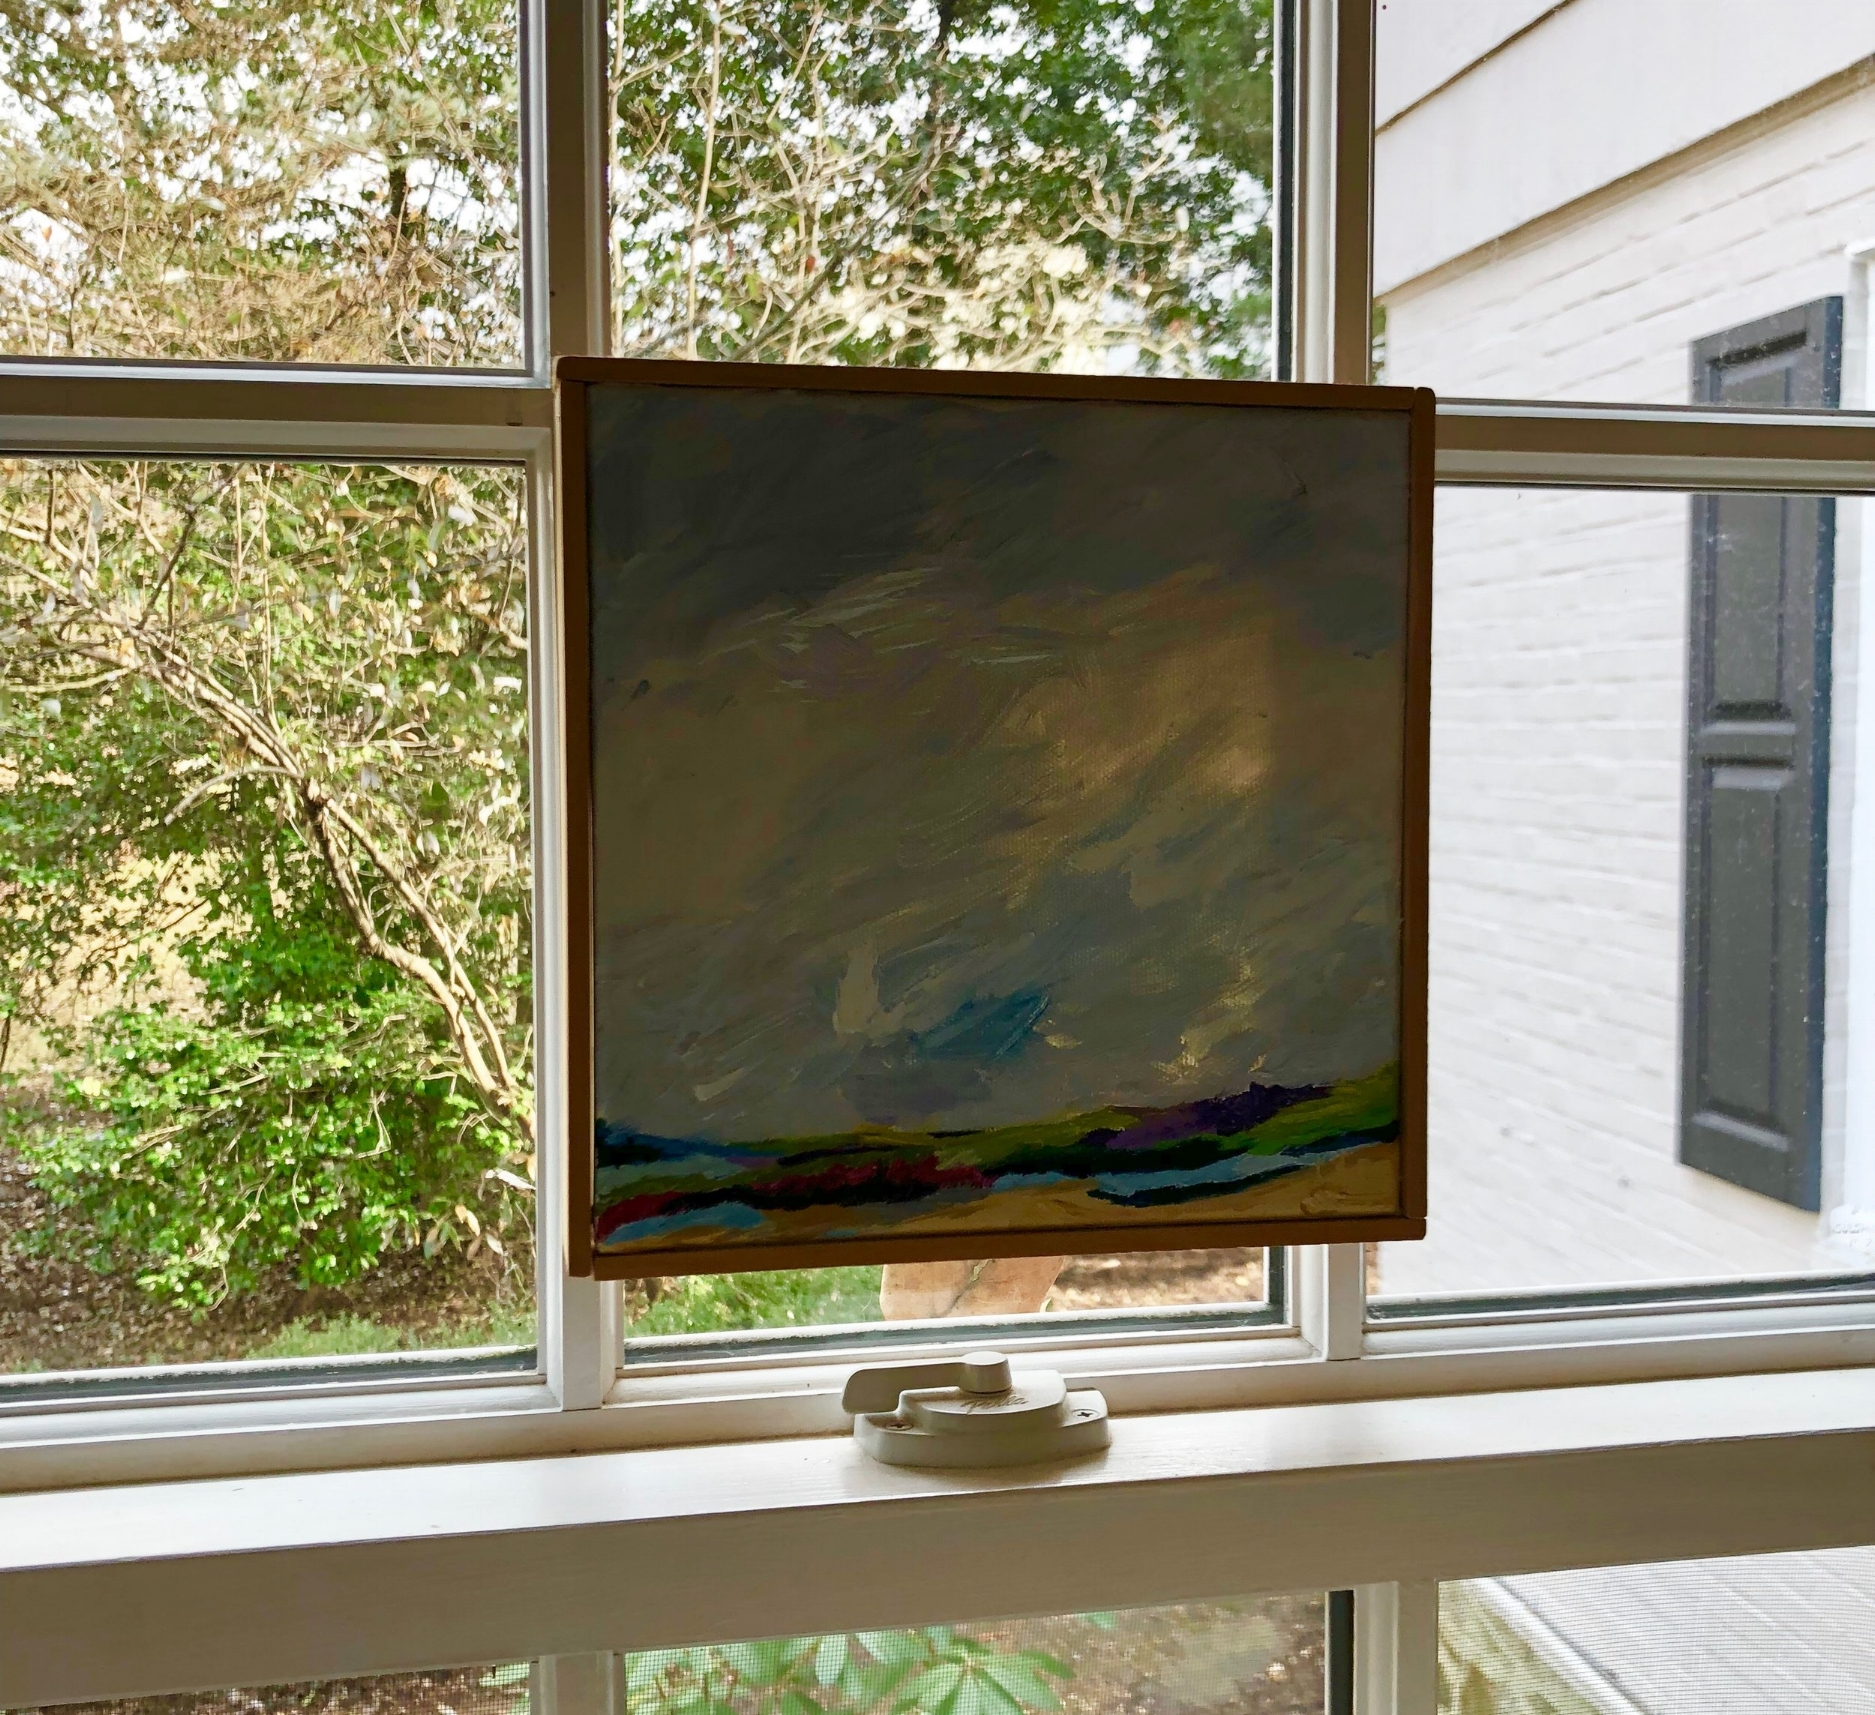 {Mary's friend painted this piece for her and it hangs, on the window, above her desk. I love the size, the specialness and the unique location of this treasured piece.}